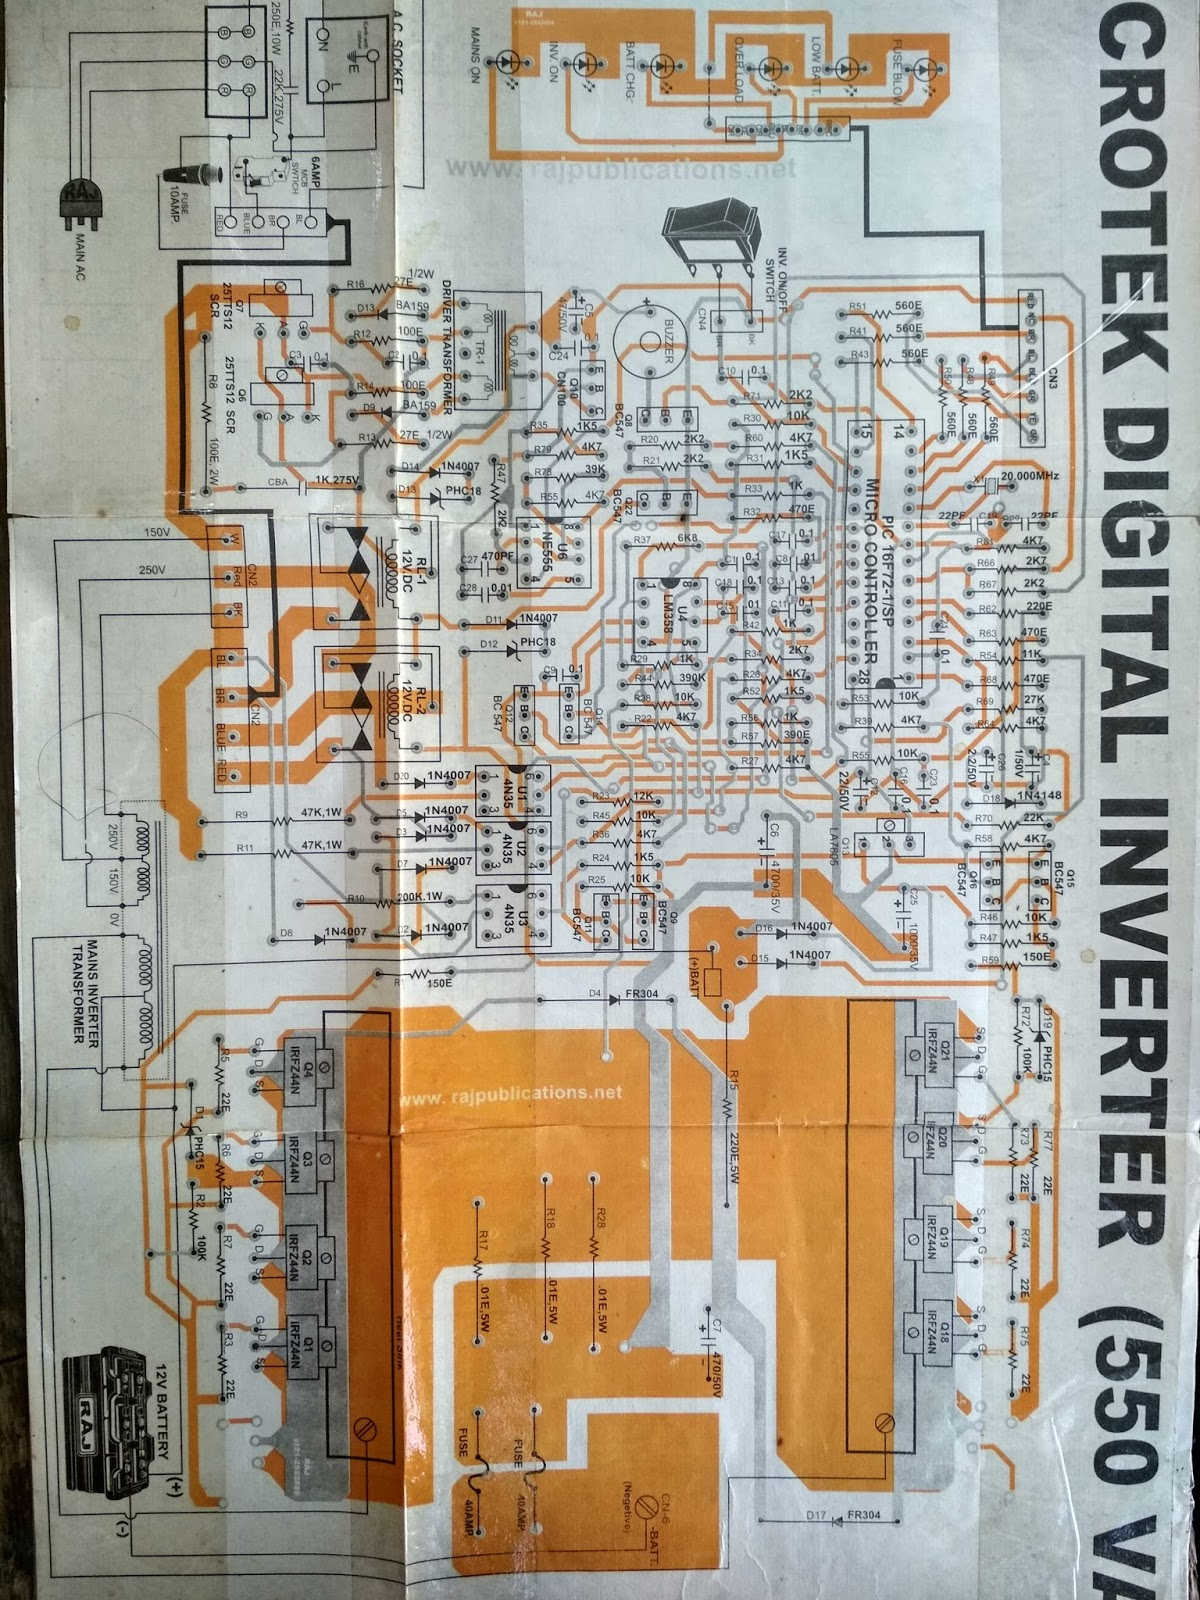 Pure Sinewave inverter diagram: 11105 ic china tv diagram